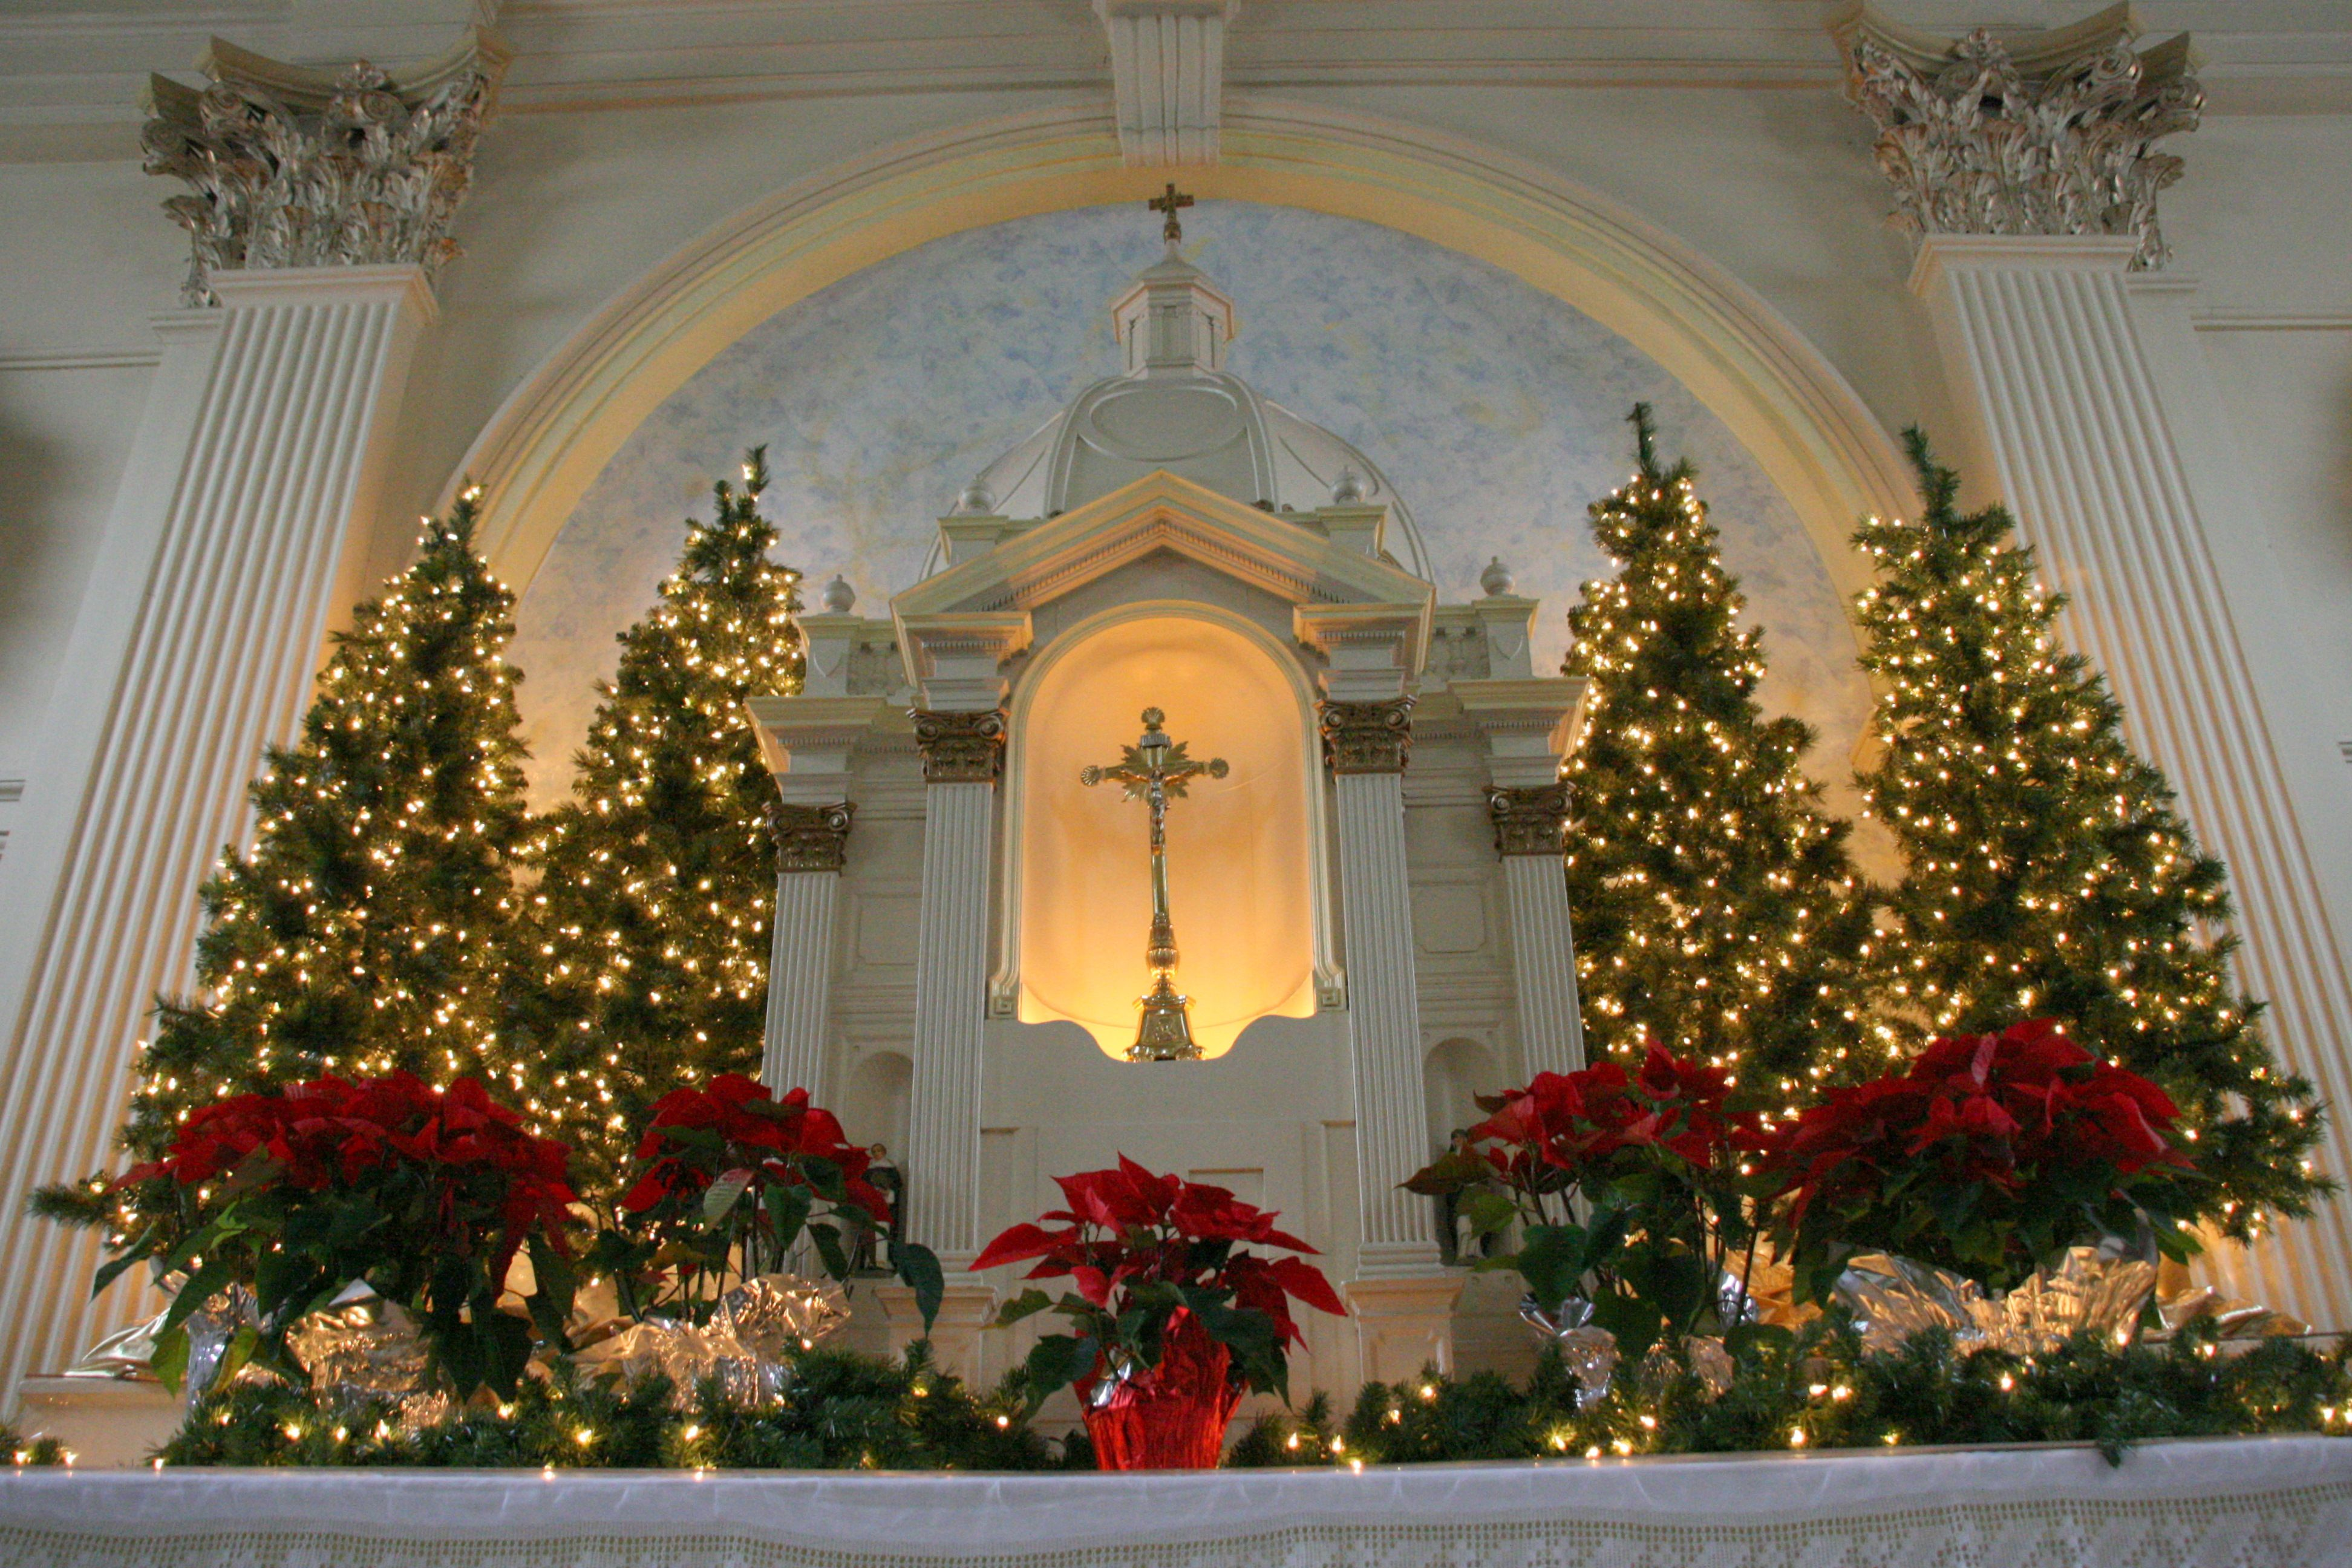 St dominic 39 s catholic church at christmas benicia ca for Decor st